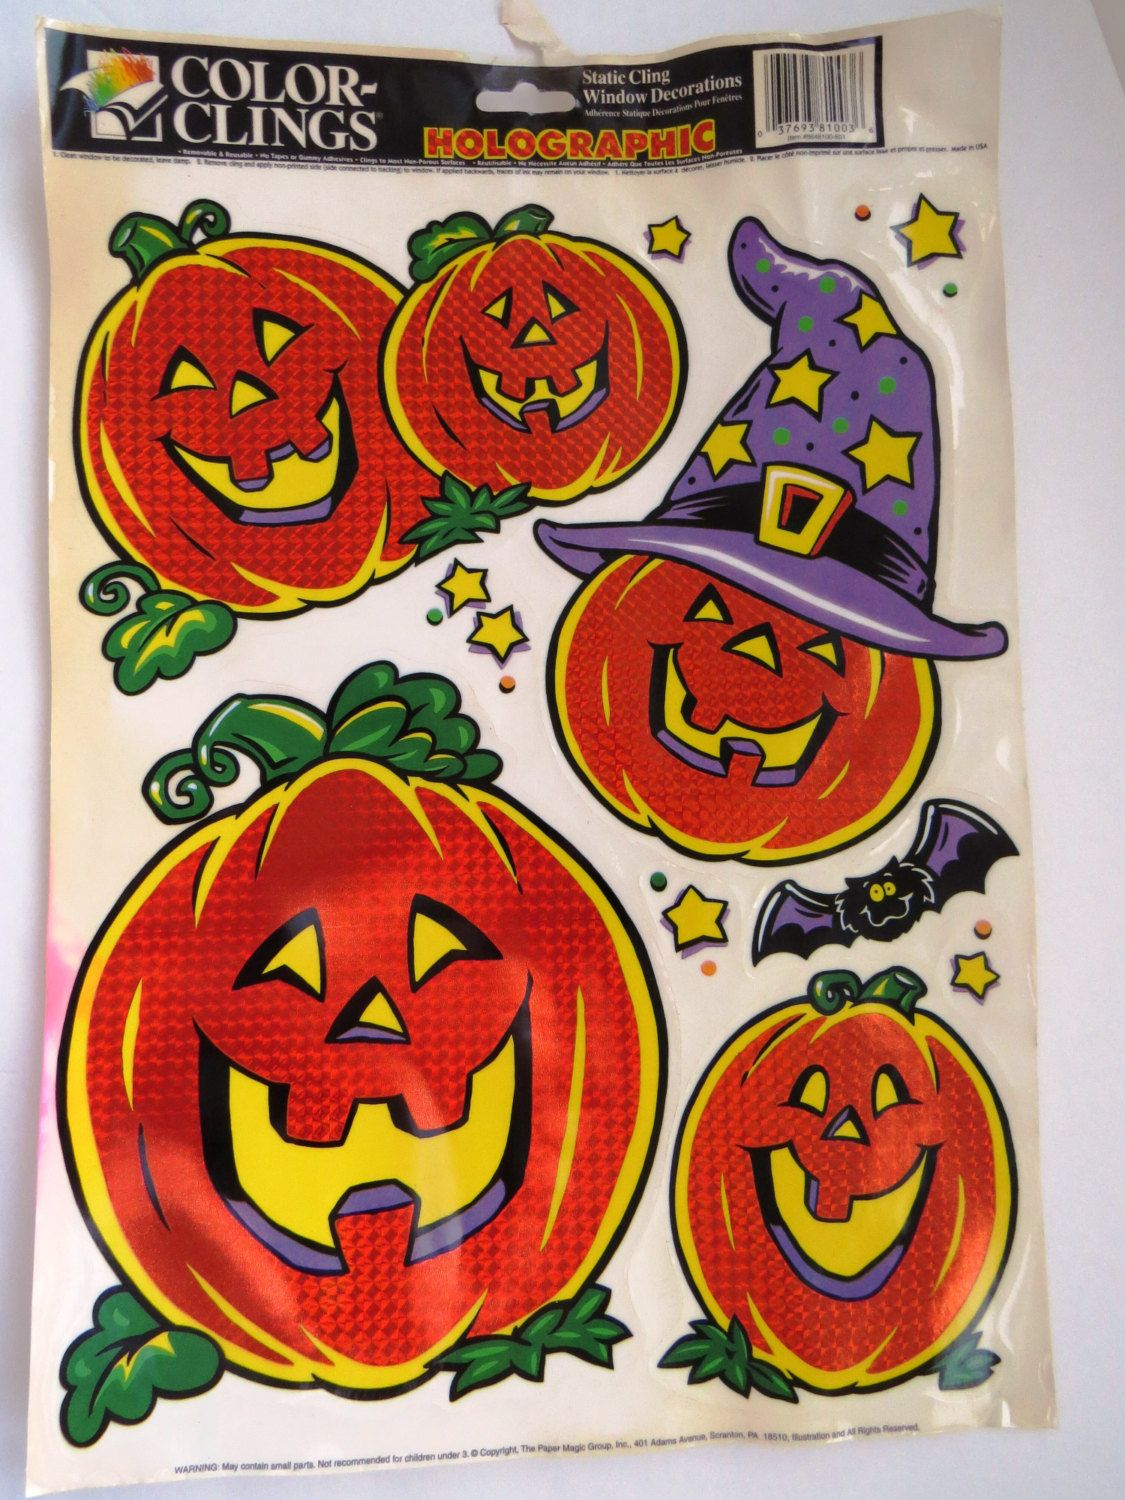 holographic halloween window clings static cling window decorations jack o lanterns bat stars trick or treat classroom decorations by shabbyshopgirls